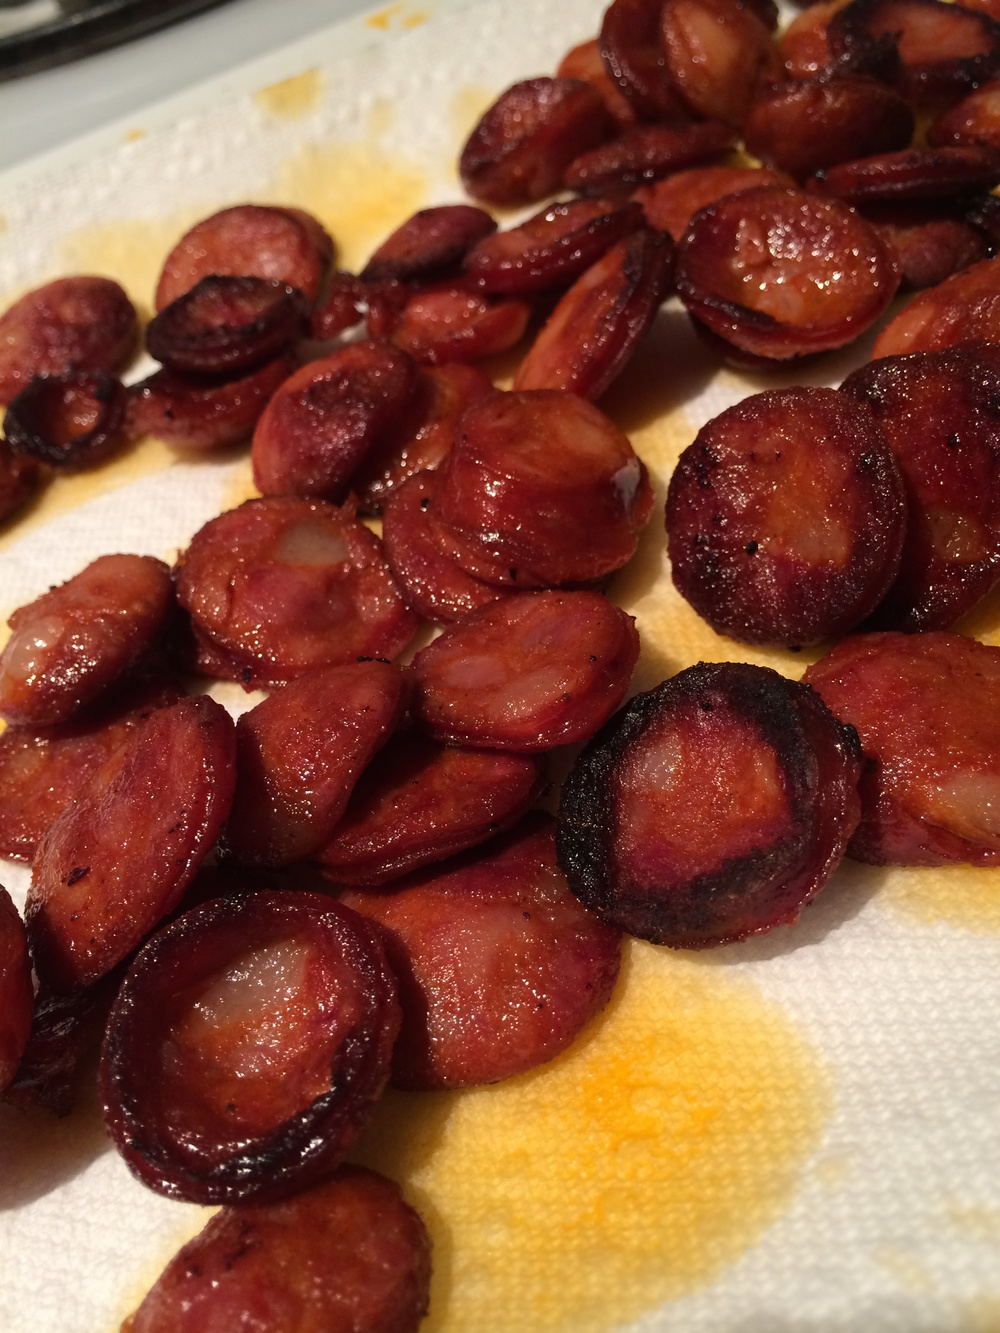 With a slotted spoon, remove the chorizo from the pot and transfer to paper towels. Leave the chorizo oil BE.